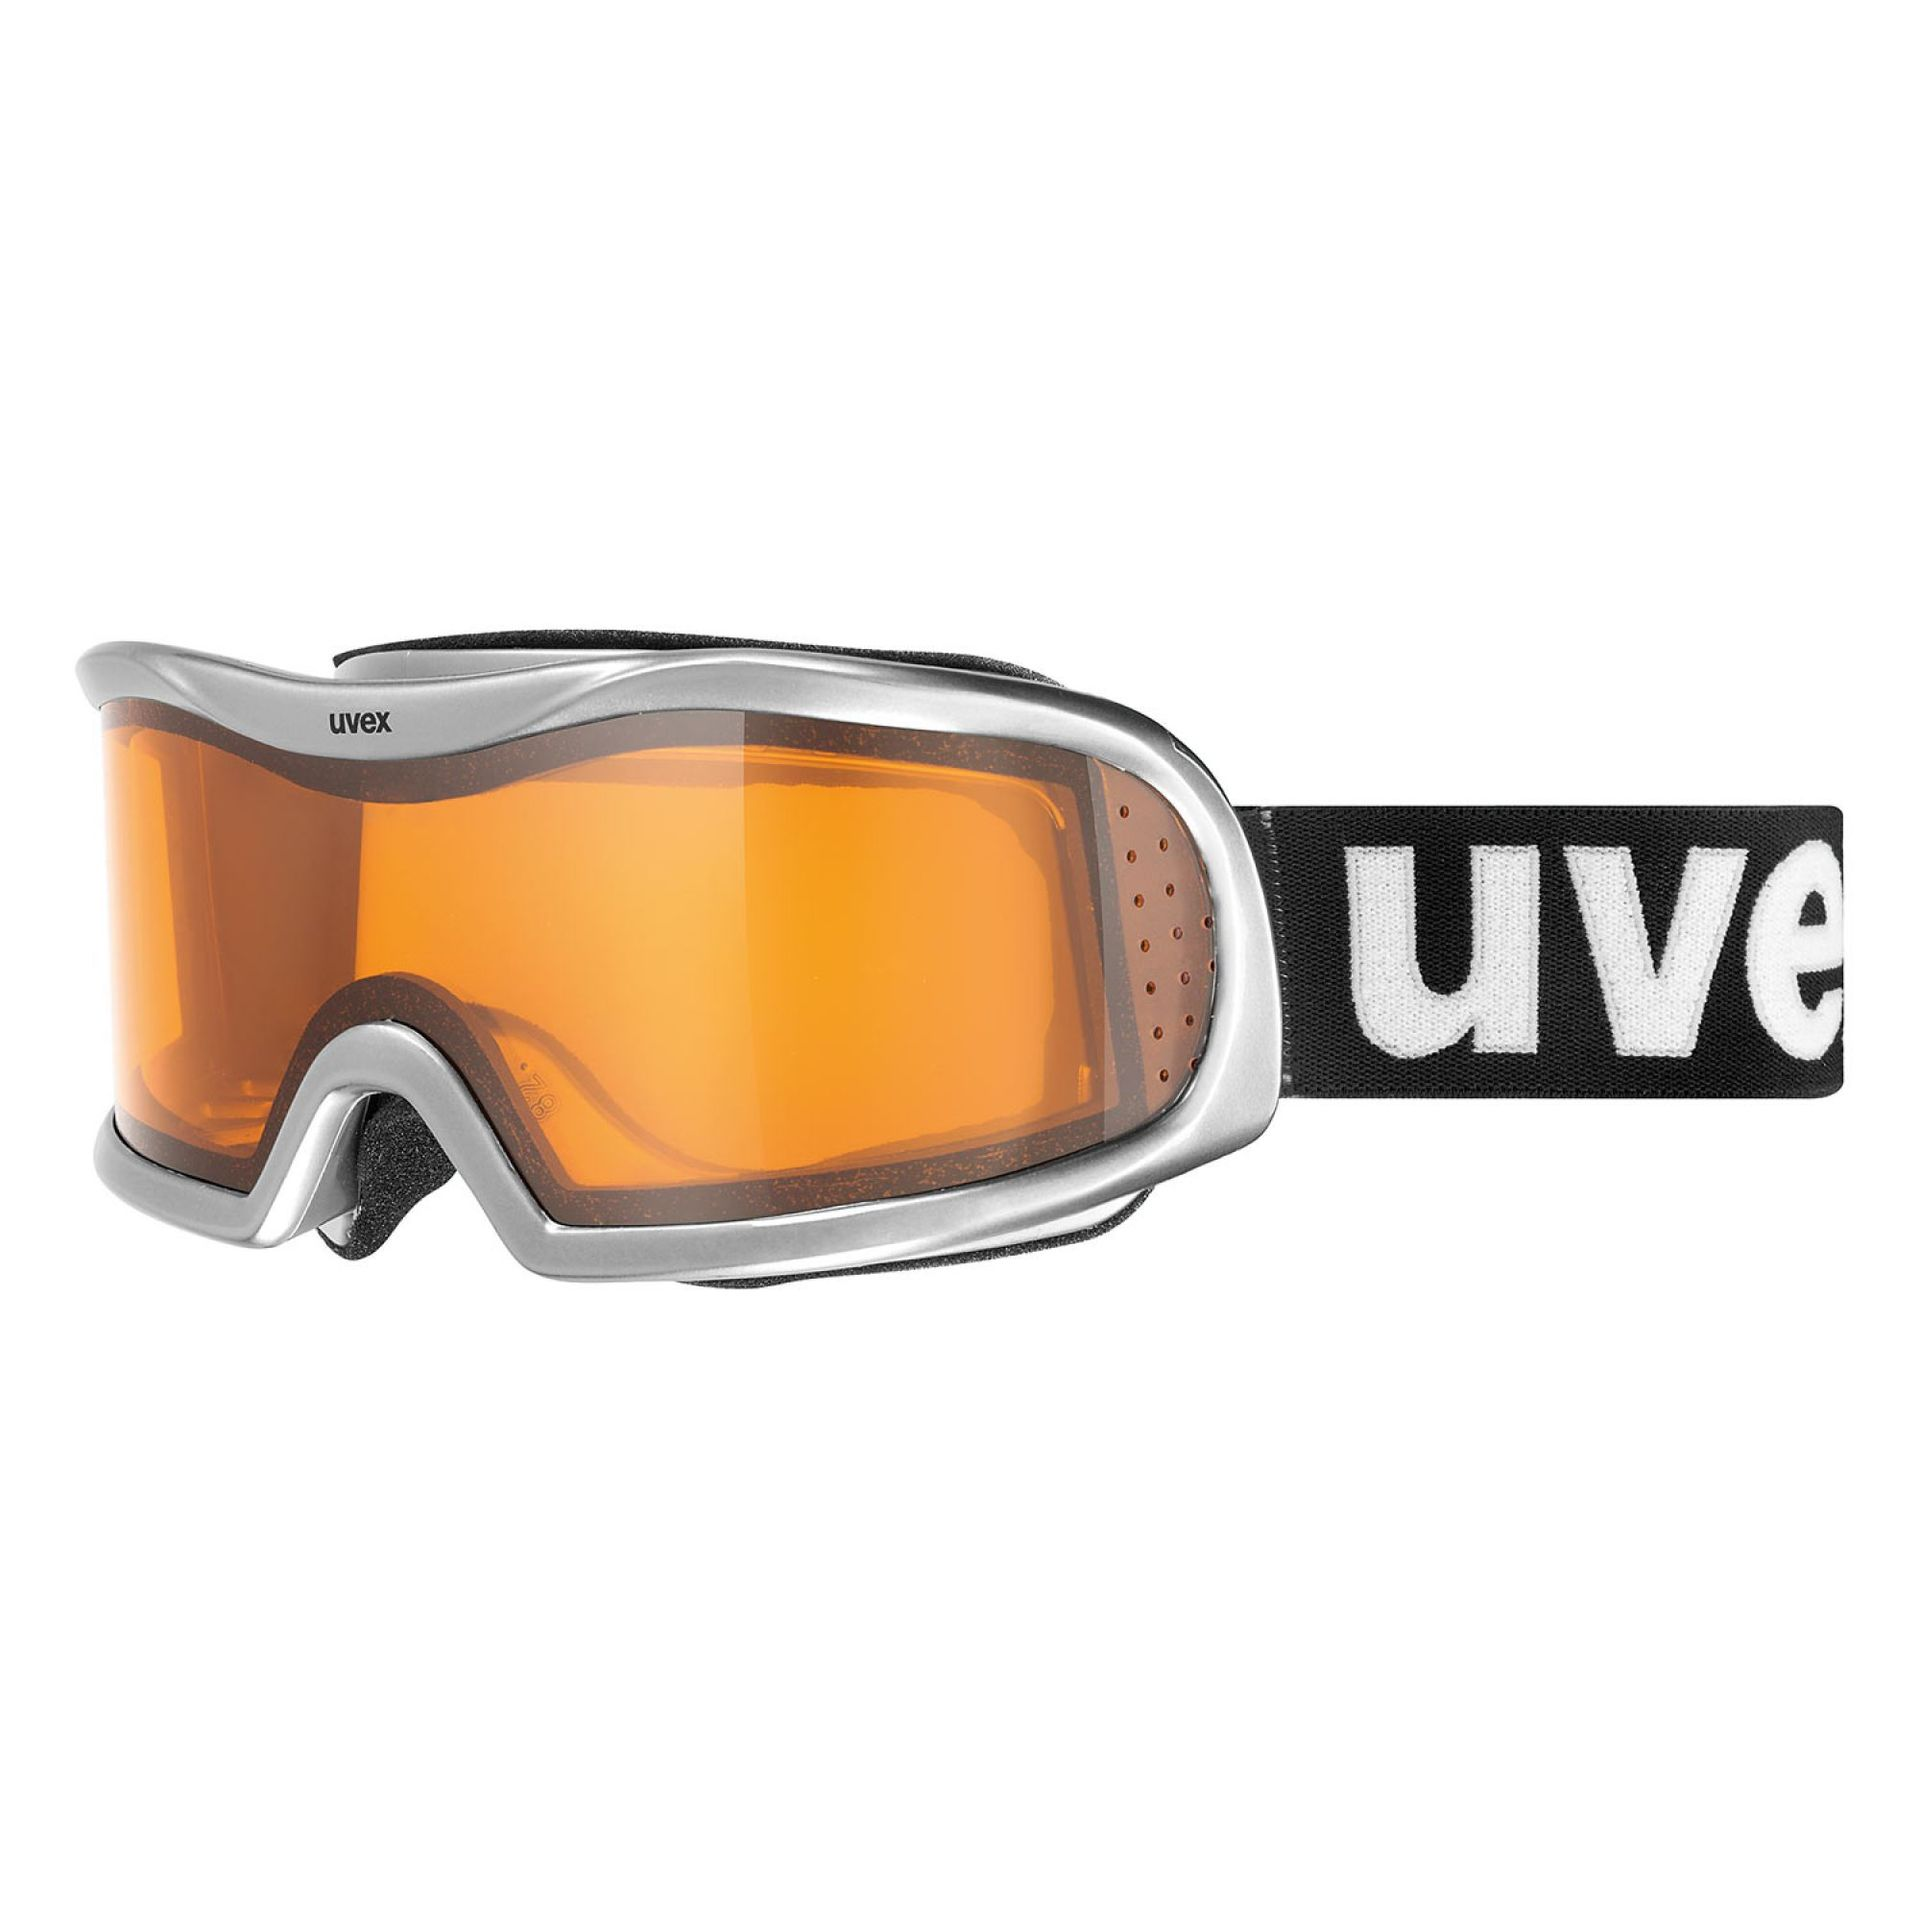 GOGLE UVEX VISION OPTIC L ALU CHROME SILVER